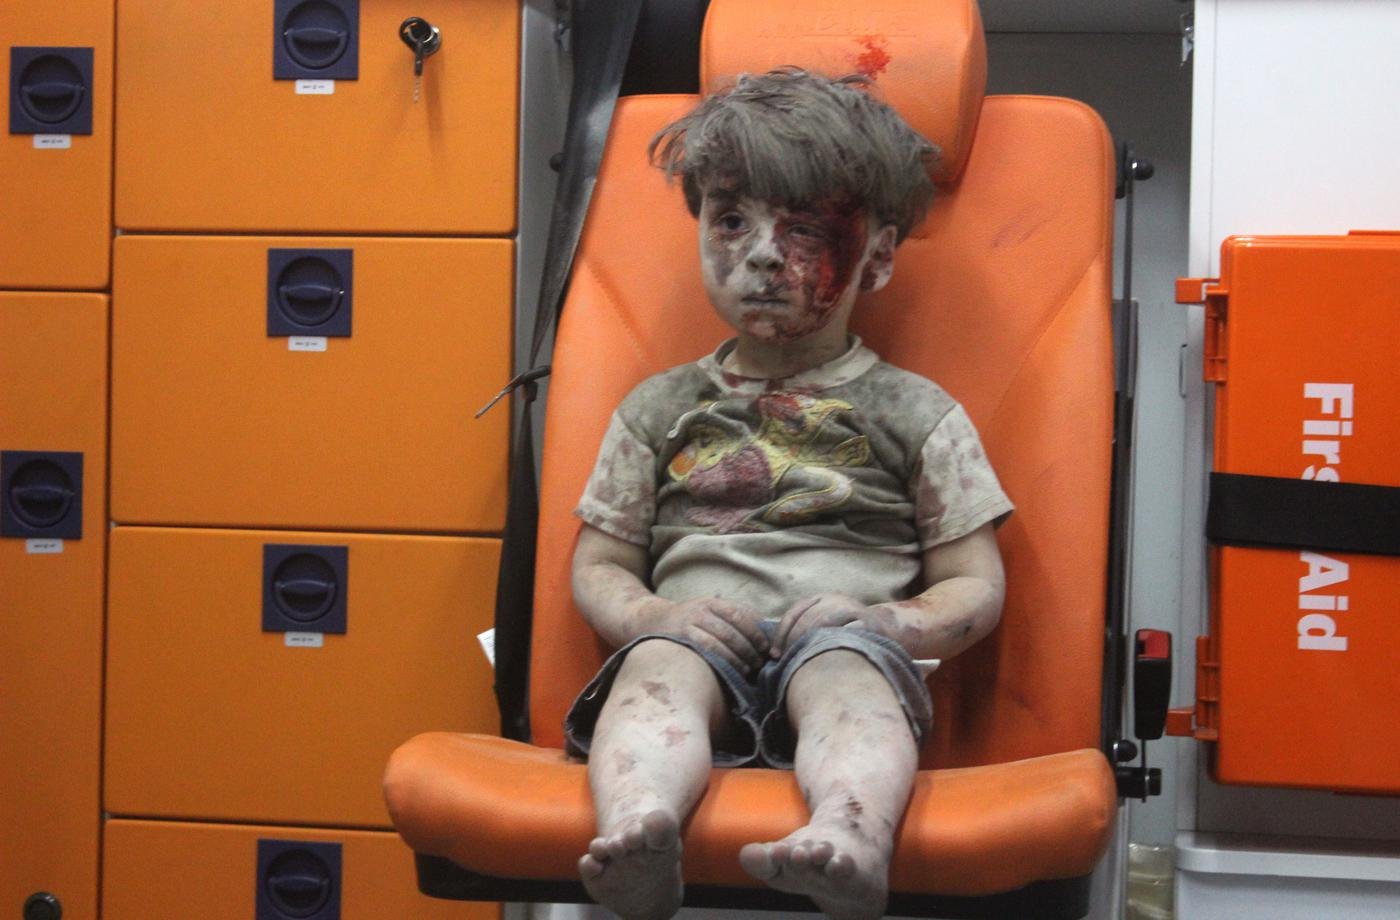 ALEPPO, SYRIA - AUGUST 17: (EDITORS NOTE: Image contains graphic content.) 5-year-old wounded Syrian kid Omran Daqneesh sits alone in the back of the ambulance after he got injured during Russian or Assad regime forces air strike targeting the Qaterji neighbourhood of Aleppo on August 17, 2016. (Photo by Mahmud Rslan/Anadolu Agency/Getty Images)